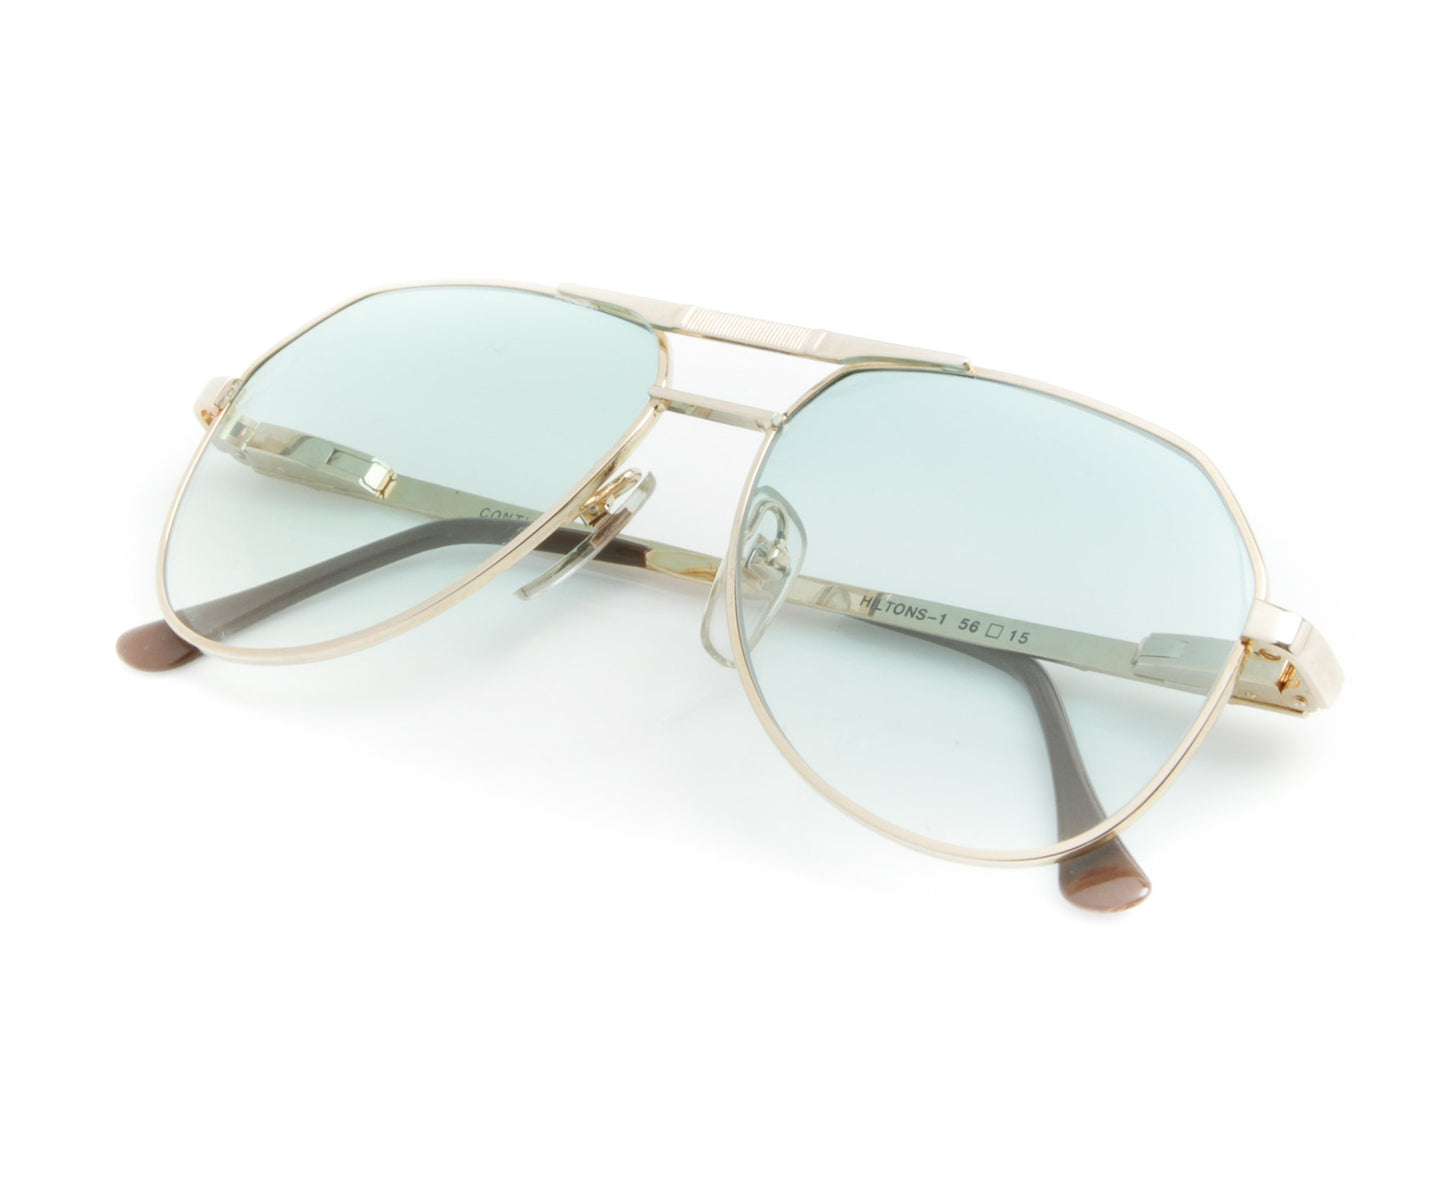 Vintage Hilton S-1 (Ocean Gradient), Hilton , glasses frames, eyeglasses online, eyeglass frames, mens glasses, womens glasses, buy glasses online, designer eyeglasses, vintage sunglasses, retro sunglasses, vintage glasses, sunglass, eyeglass, glasses, lens, vintage frames company, vf